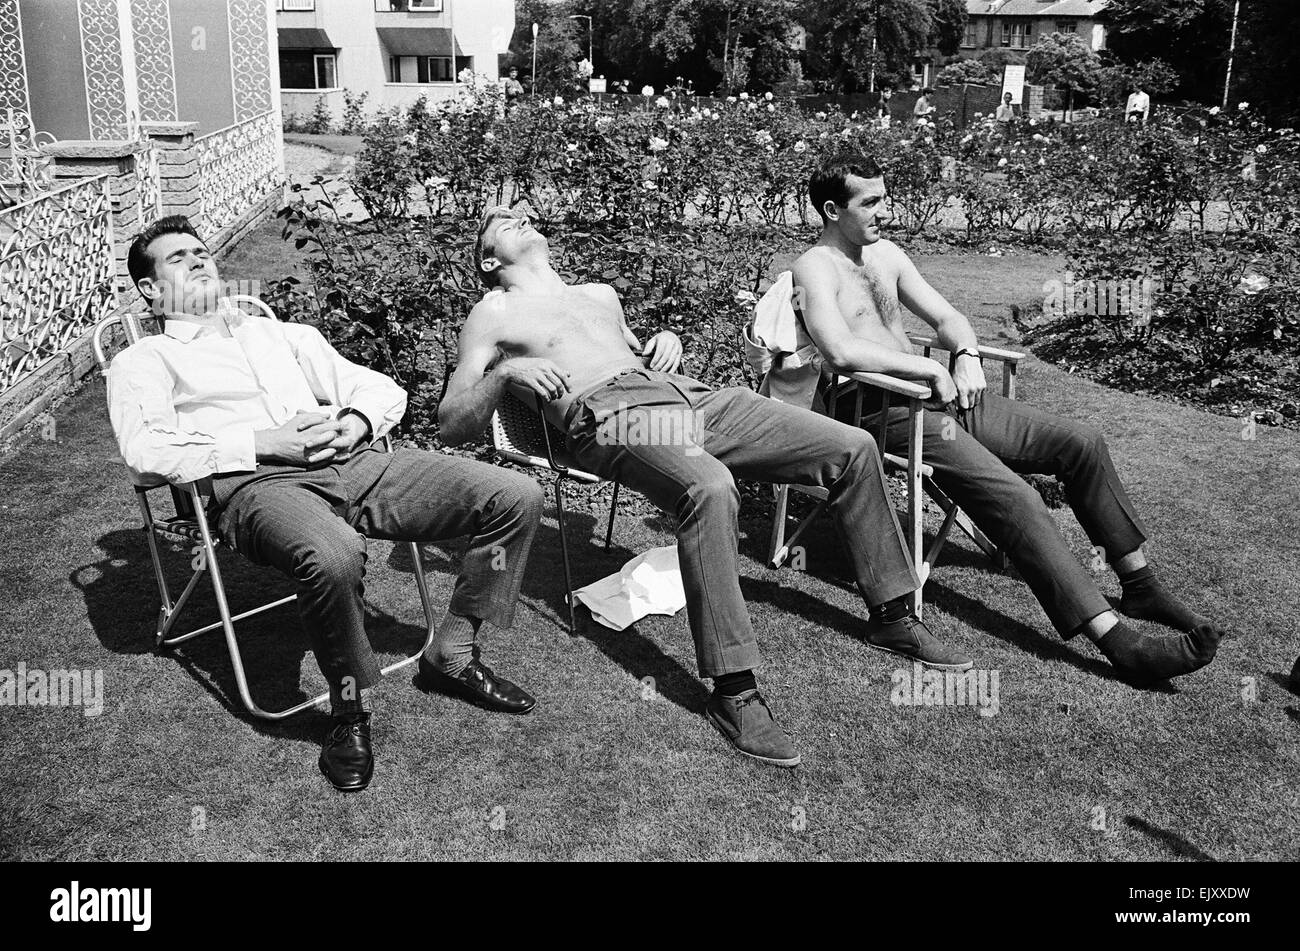 1966 World Cup The England squad at their base in Hendon where they stayed throughout the tournament.  Sunbathing. - Stock Image